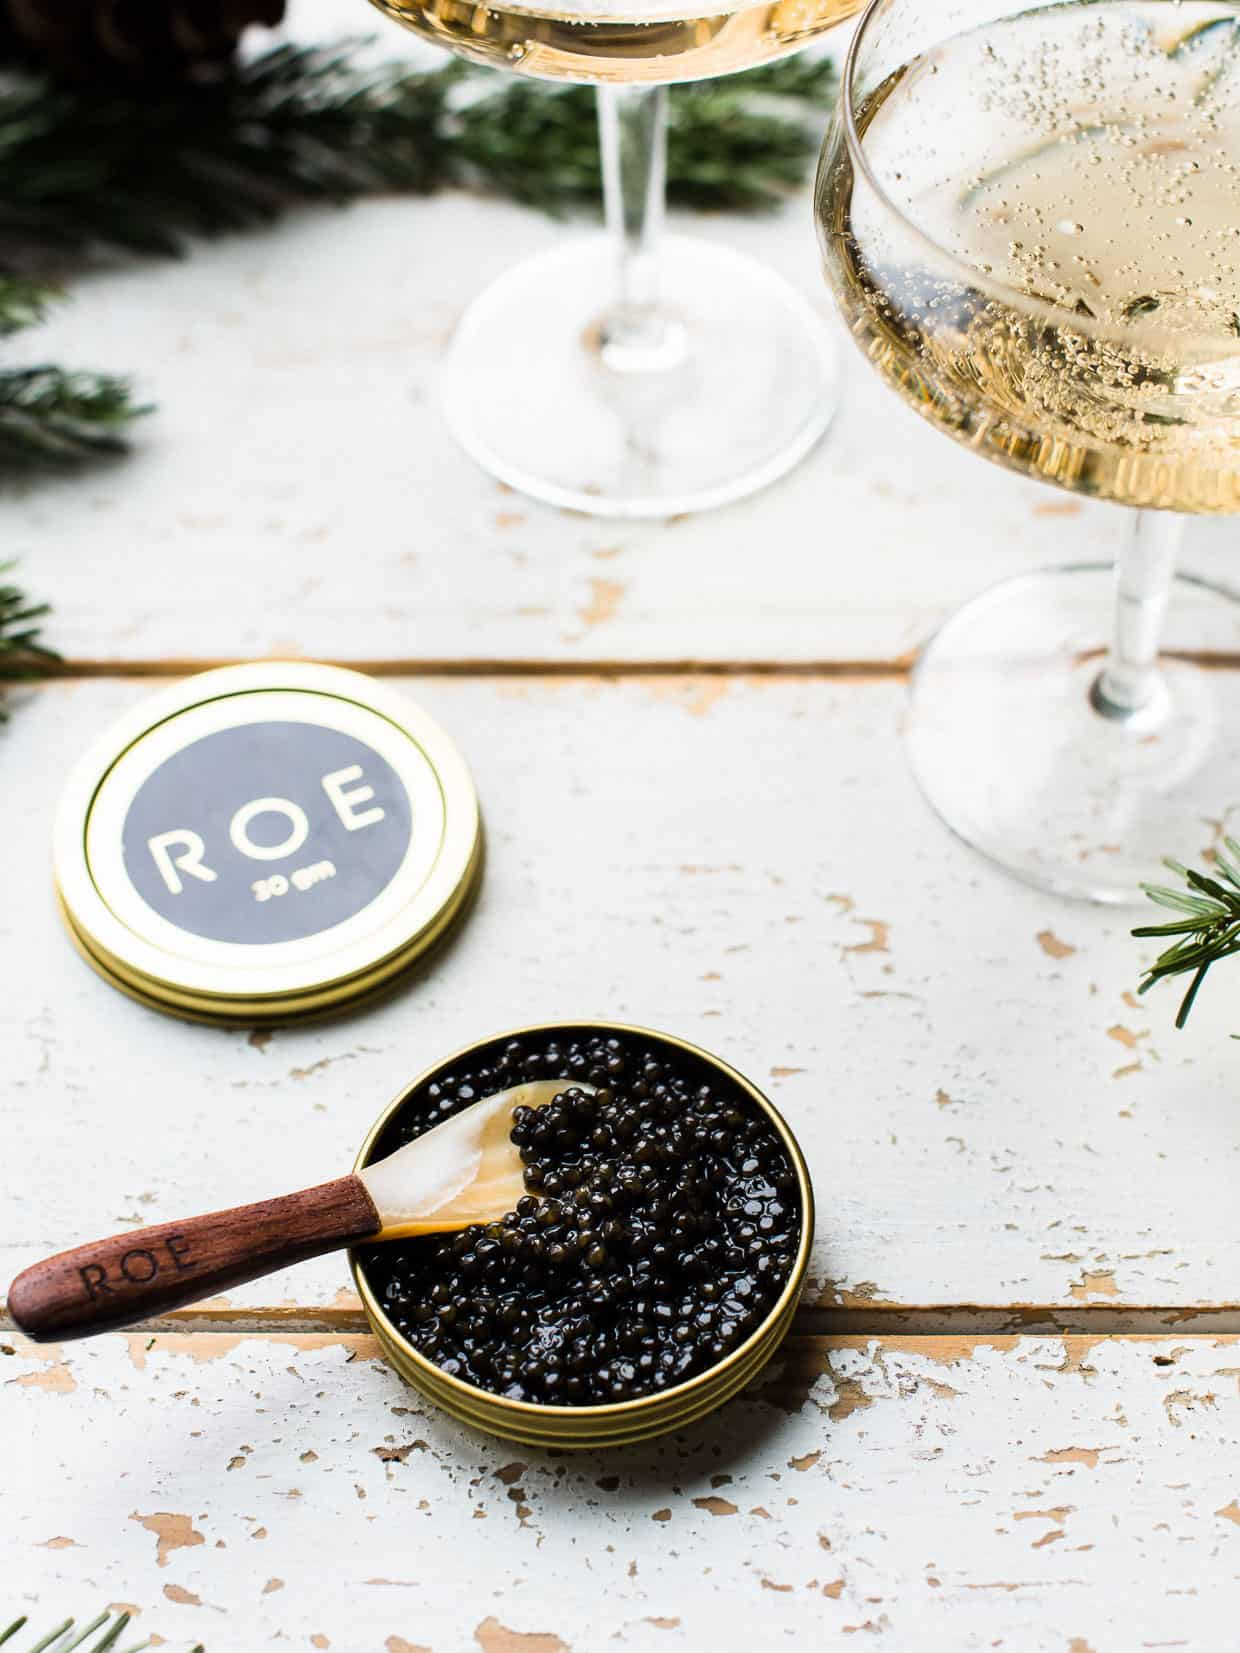 A small container of ROE Caviar with a spoon on a chippy wooden counter top.